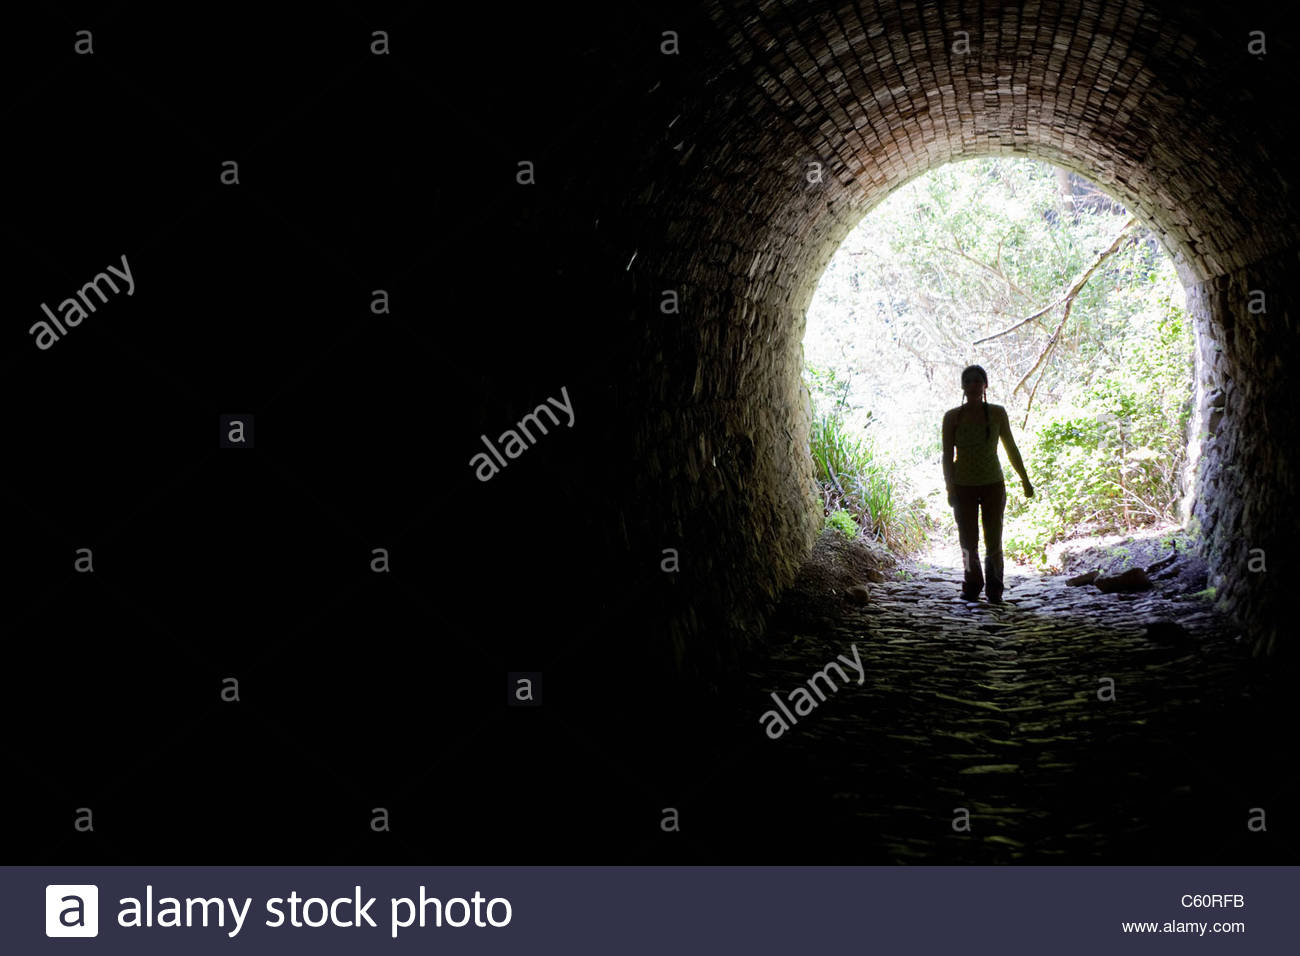 Woman walking in tunnel - Stock Image